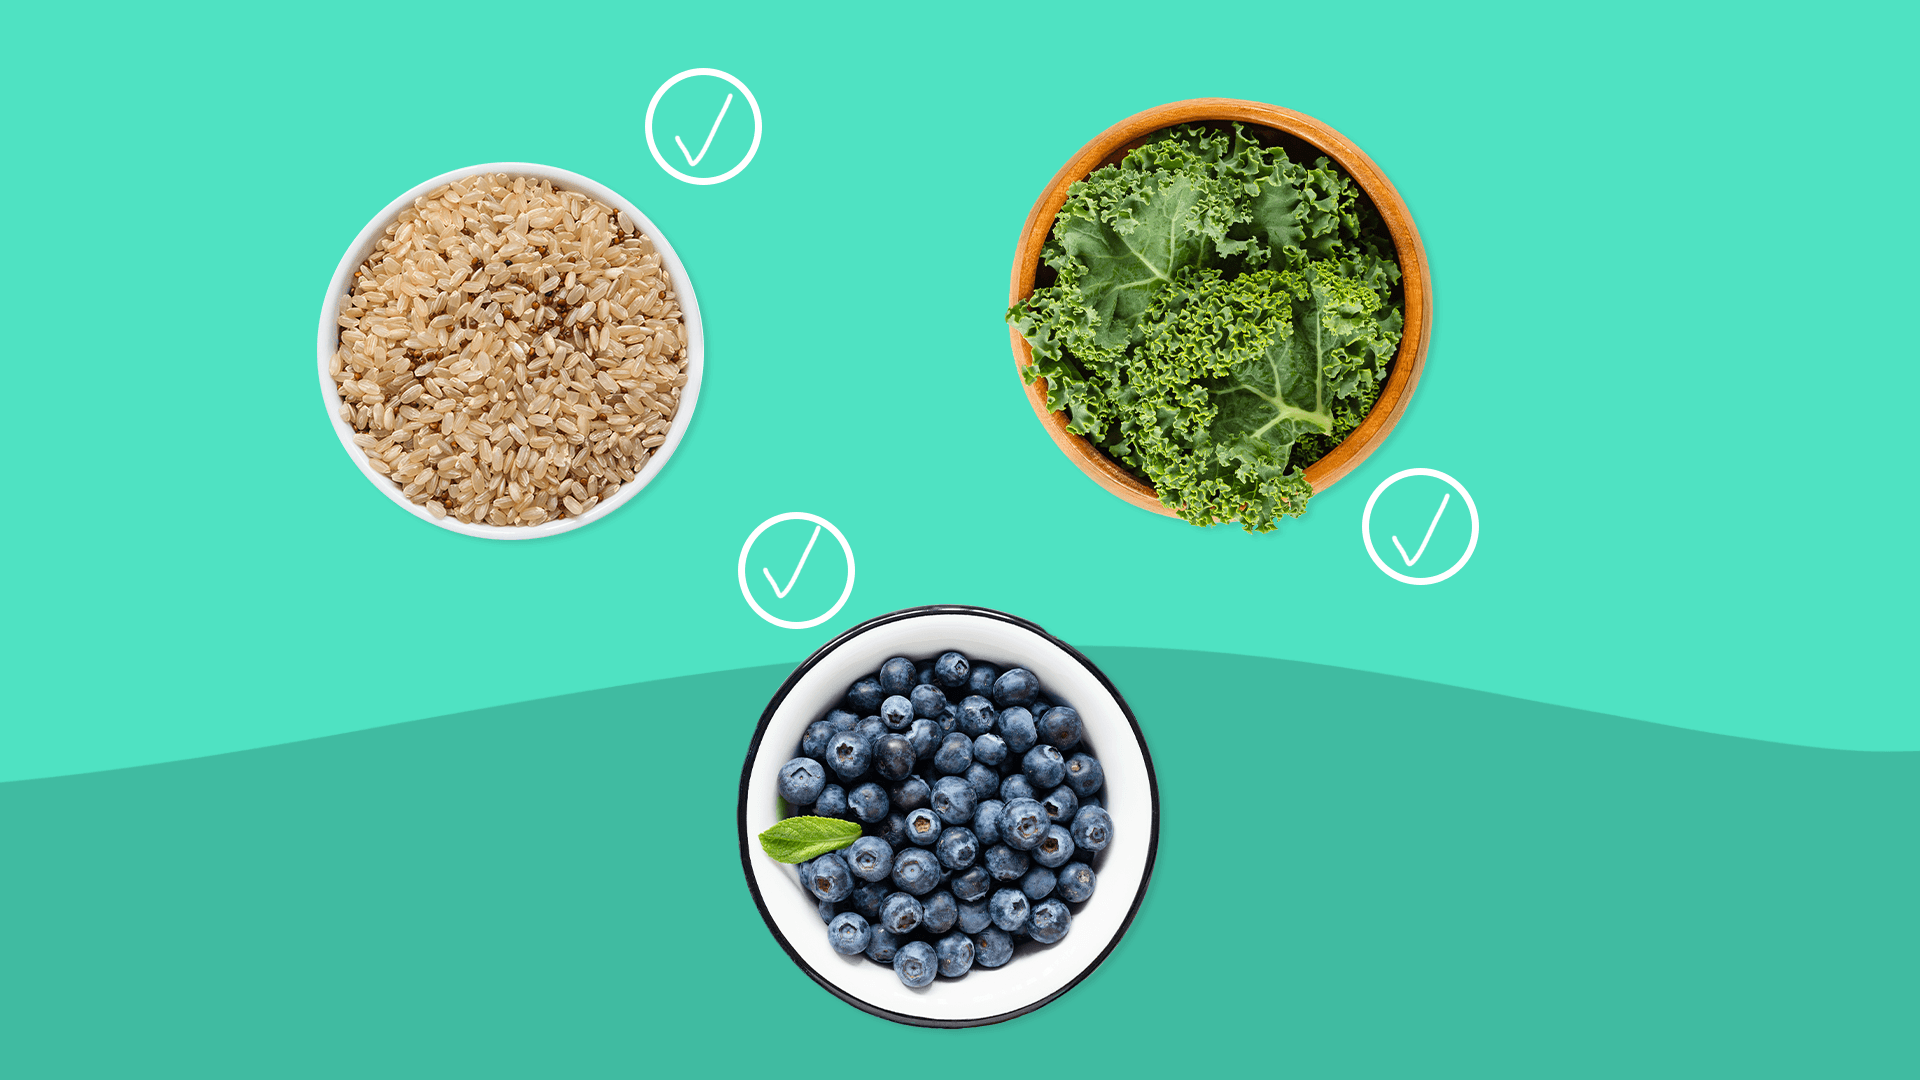 Try these 7 foods that help arthritis—and learn what to avoid